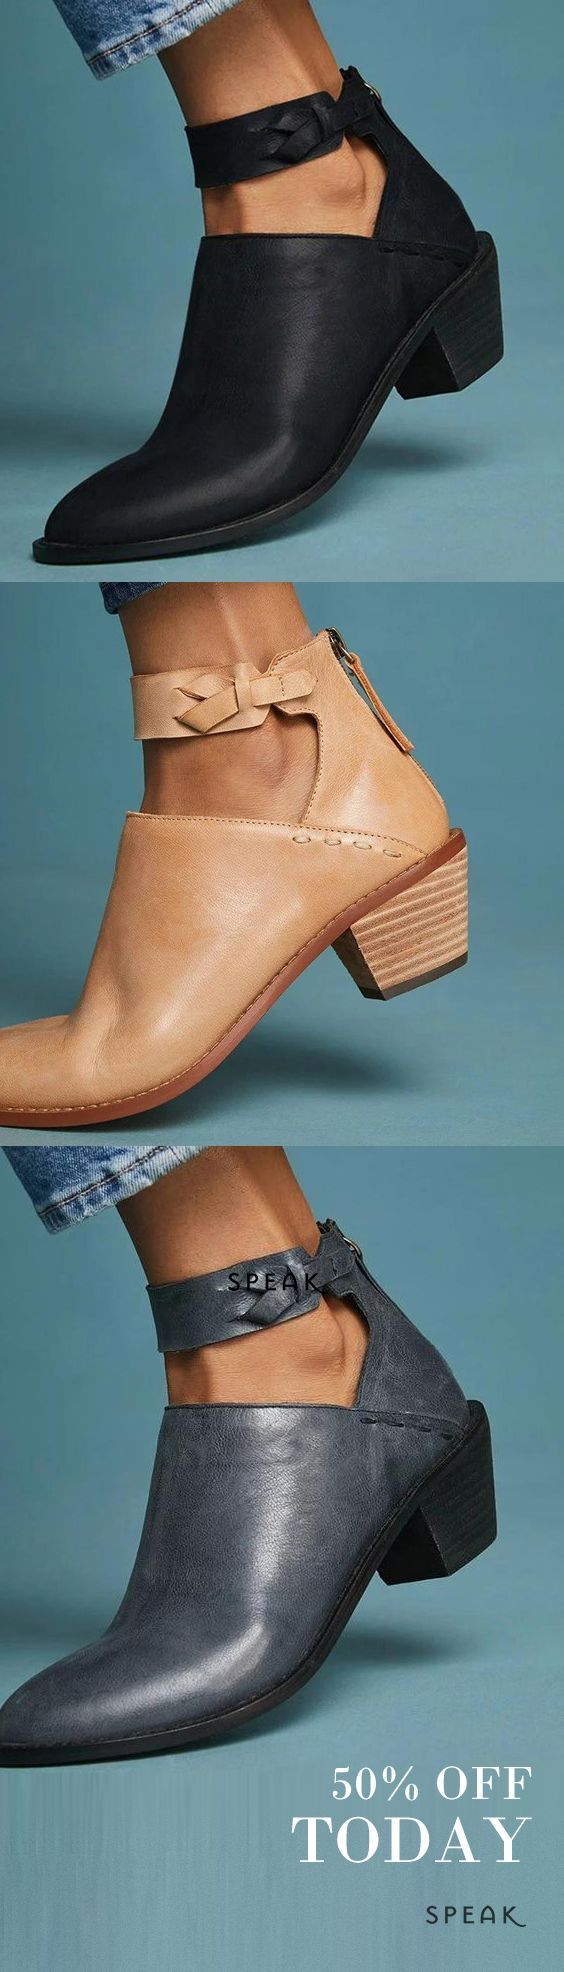 Ankle-Strap Heels - 50% off today. The cutest boots, heels, shoes, loafers and m... 3